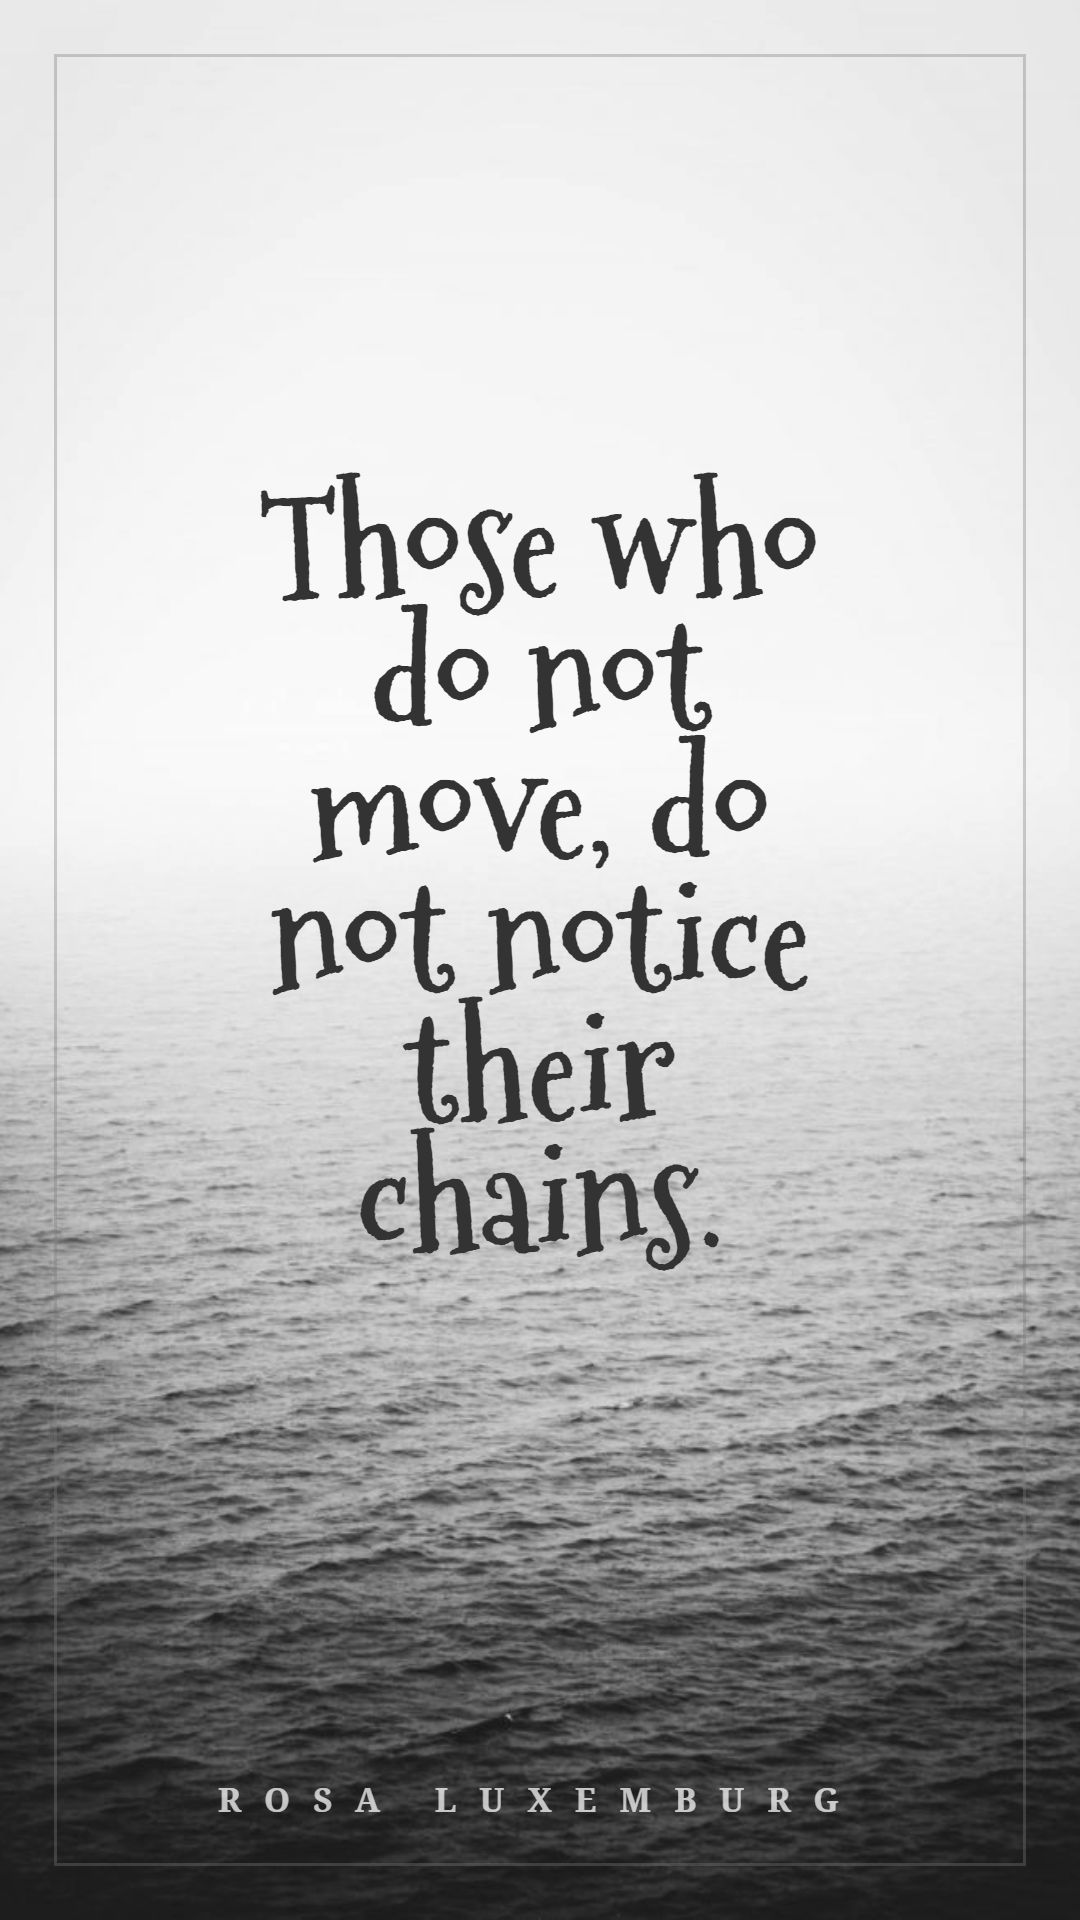 Quotes image of Those who do not move, do not notice their chains.